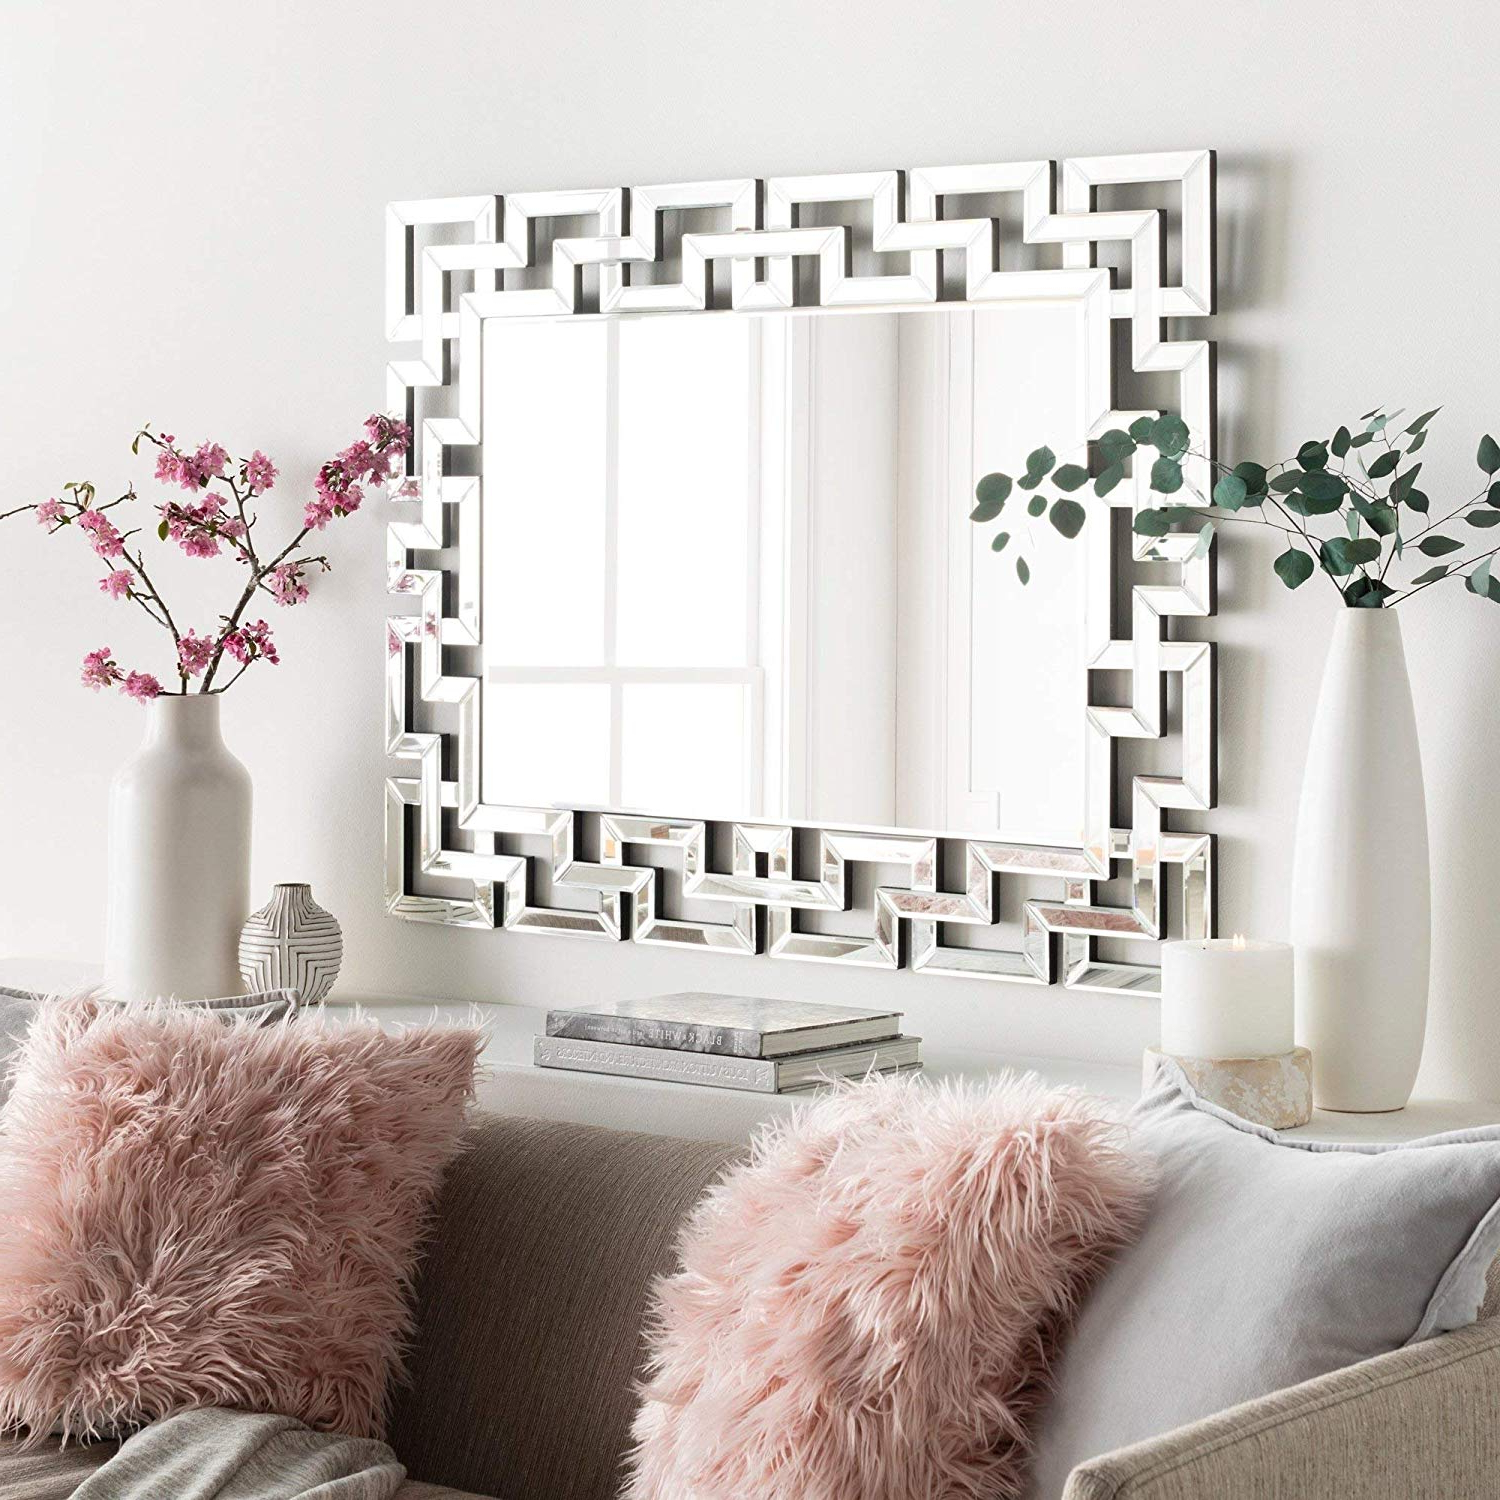 "Art Decorative Wall Mirrors Large Grecian Venetian Mirror For Hotel Home  Vanity Sliver Mirror (27.5"" W X (View 3 of 20)"